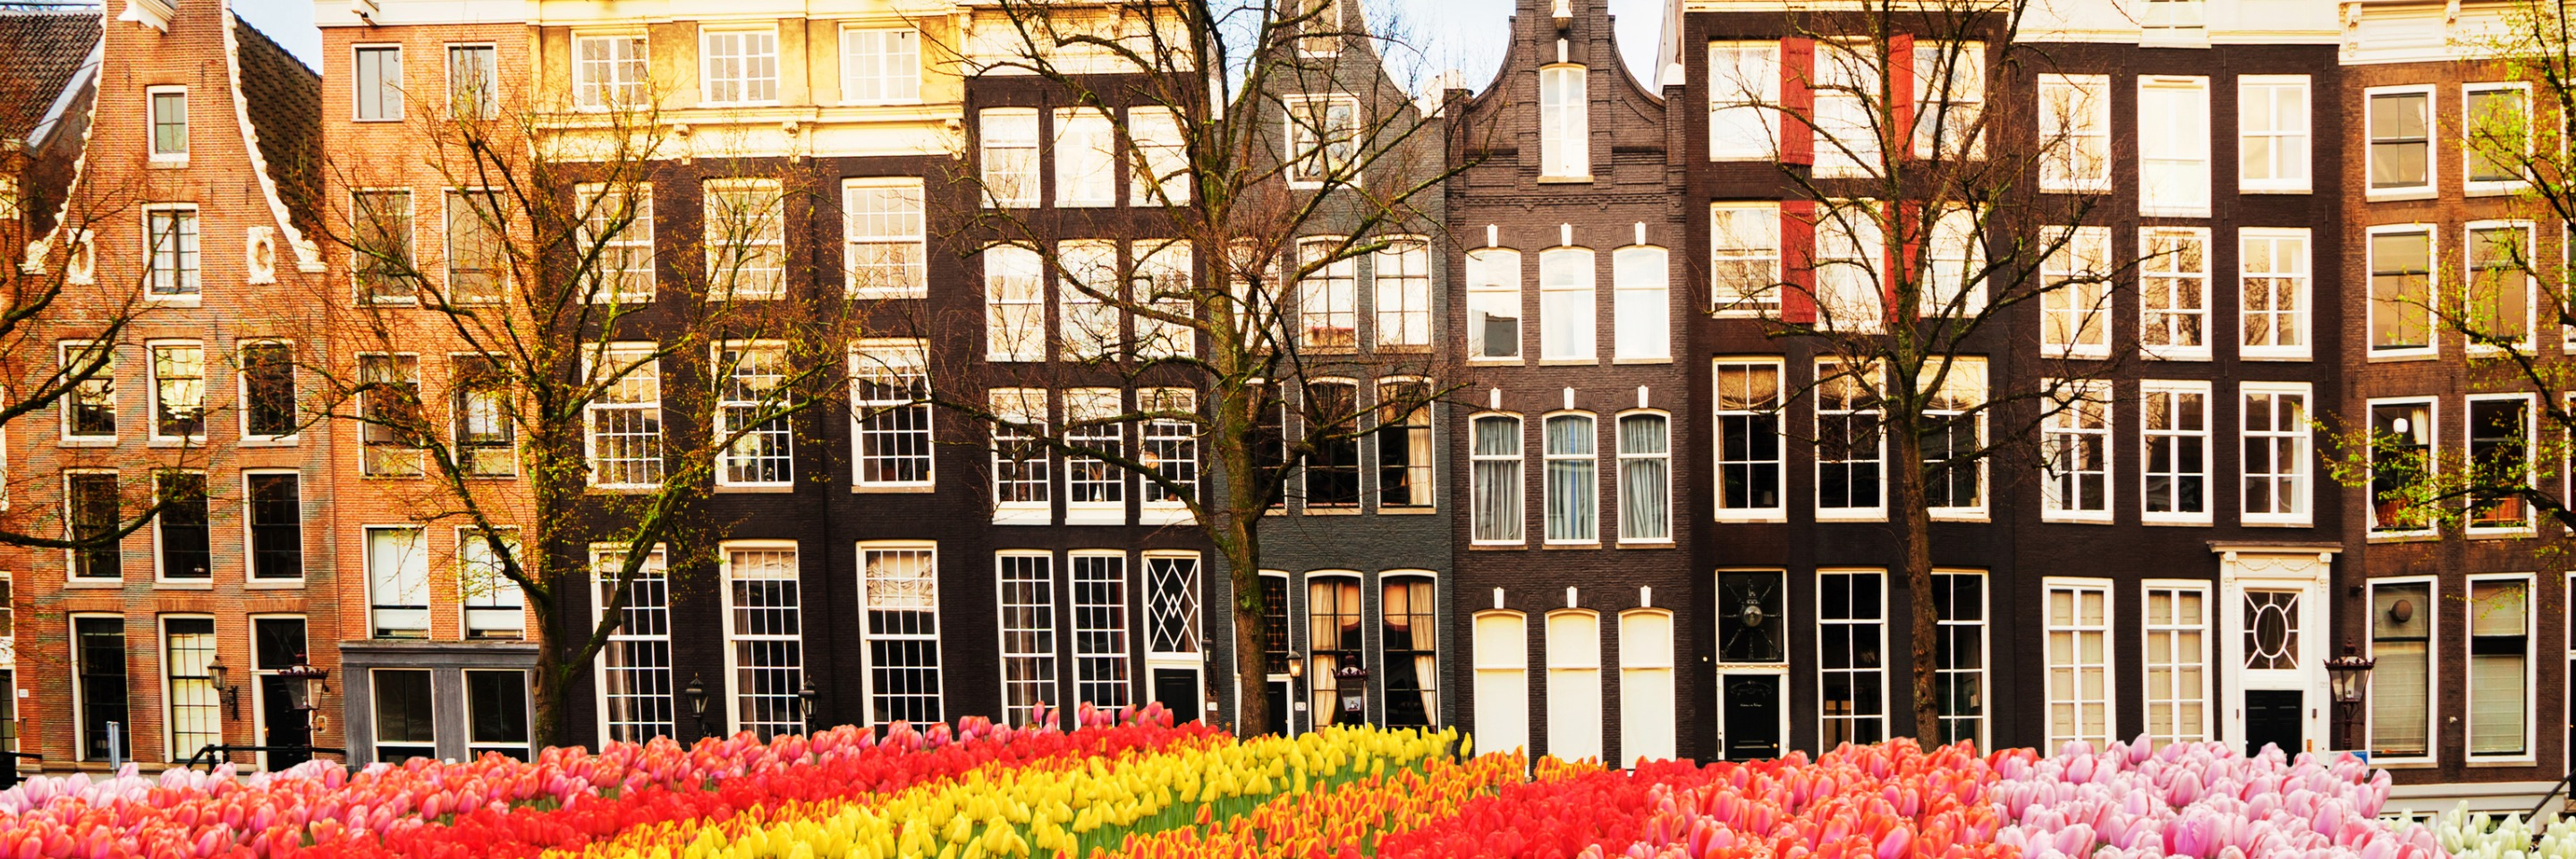 Tulip Time Cruise with 3 Nights in Paris for Beer Enthusiasts